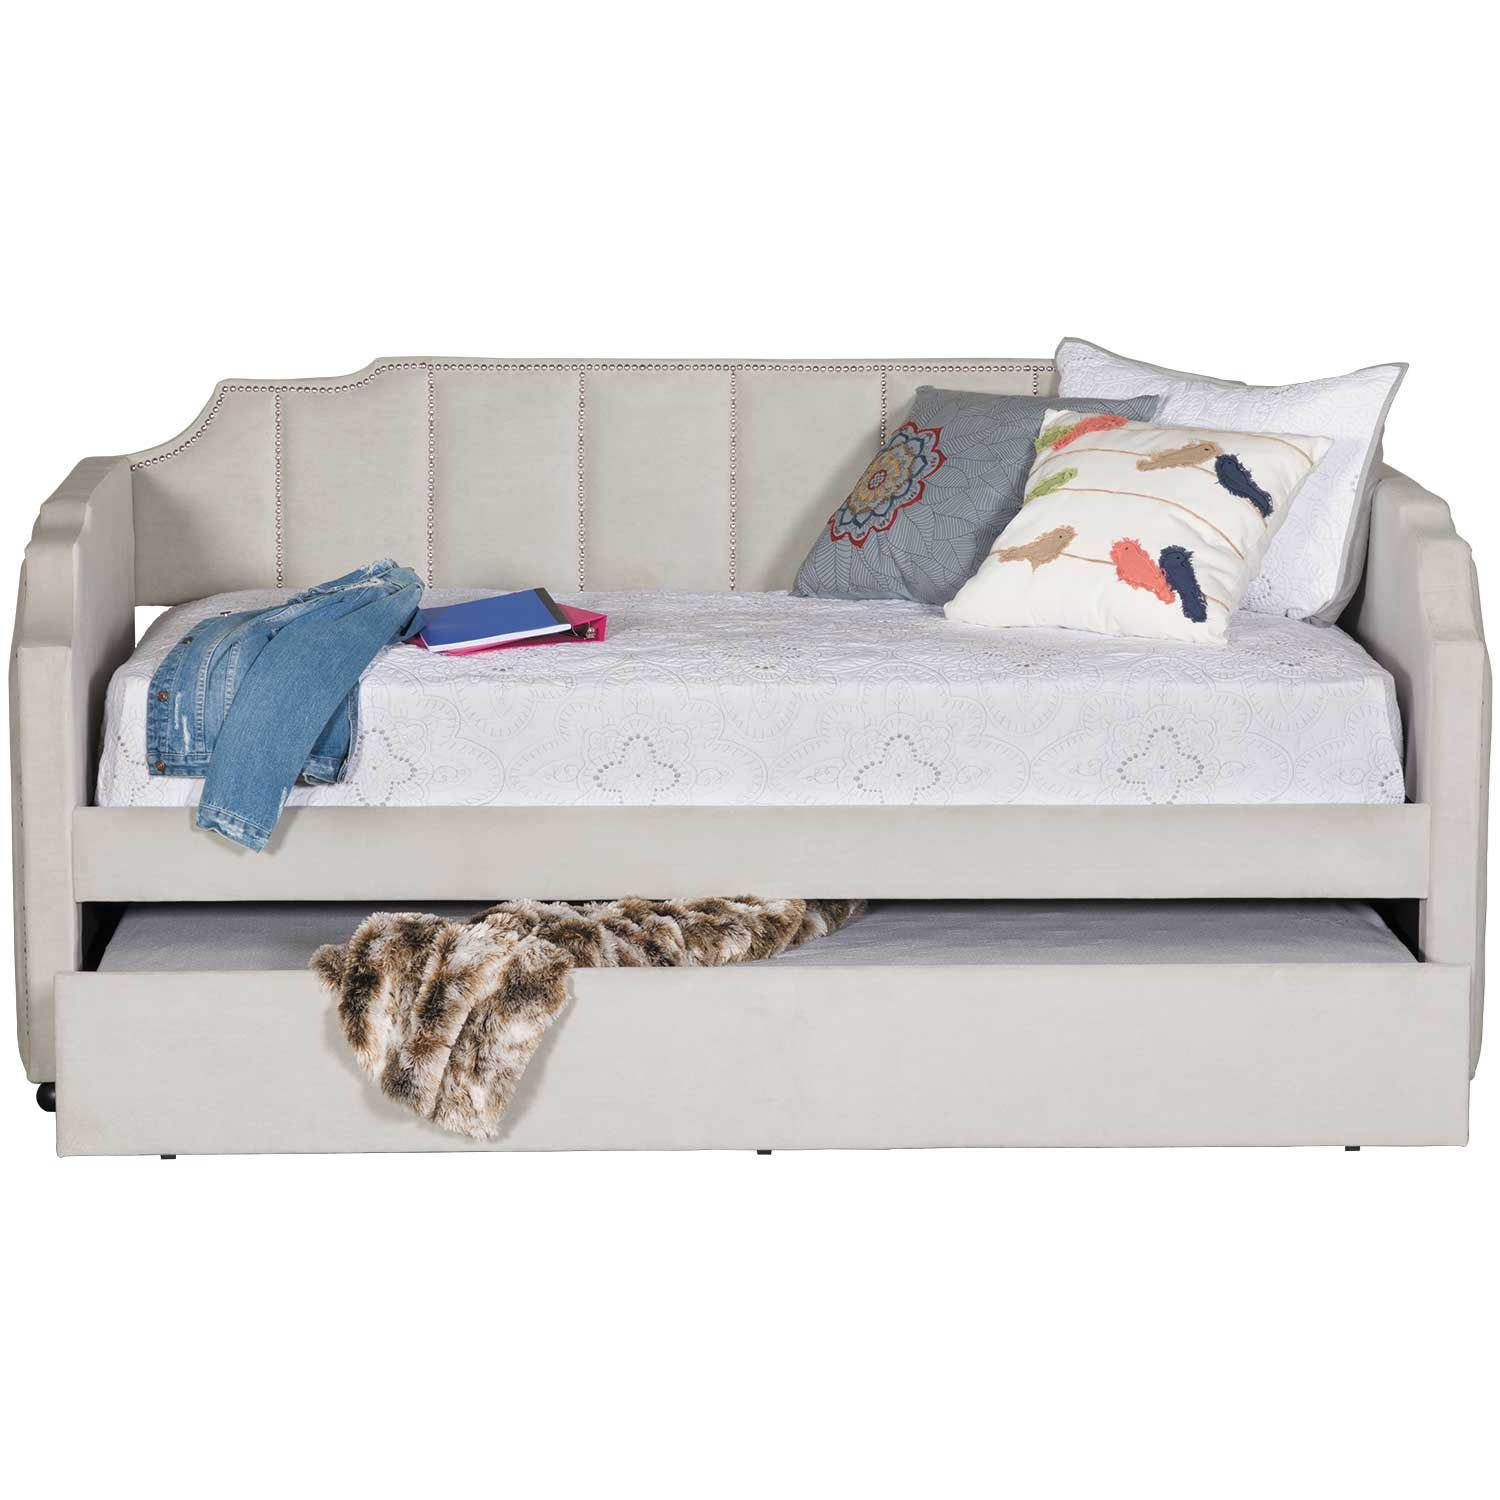 Picture of Zanna Upholstered Daybed